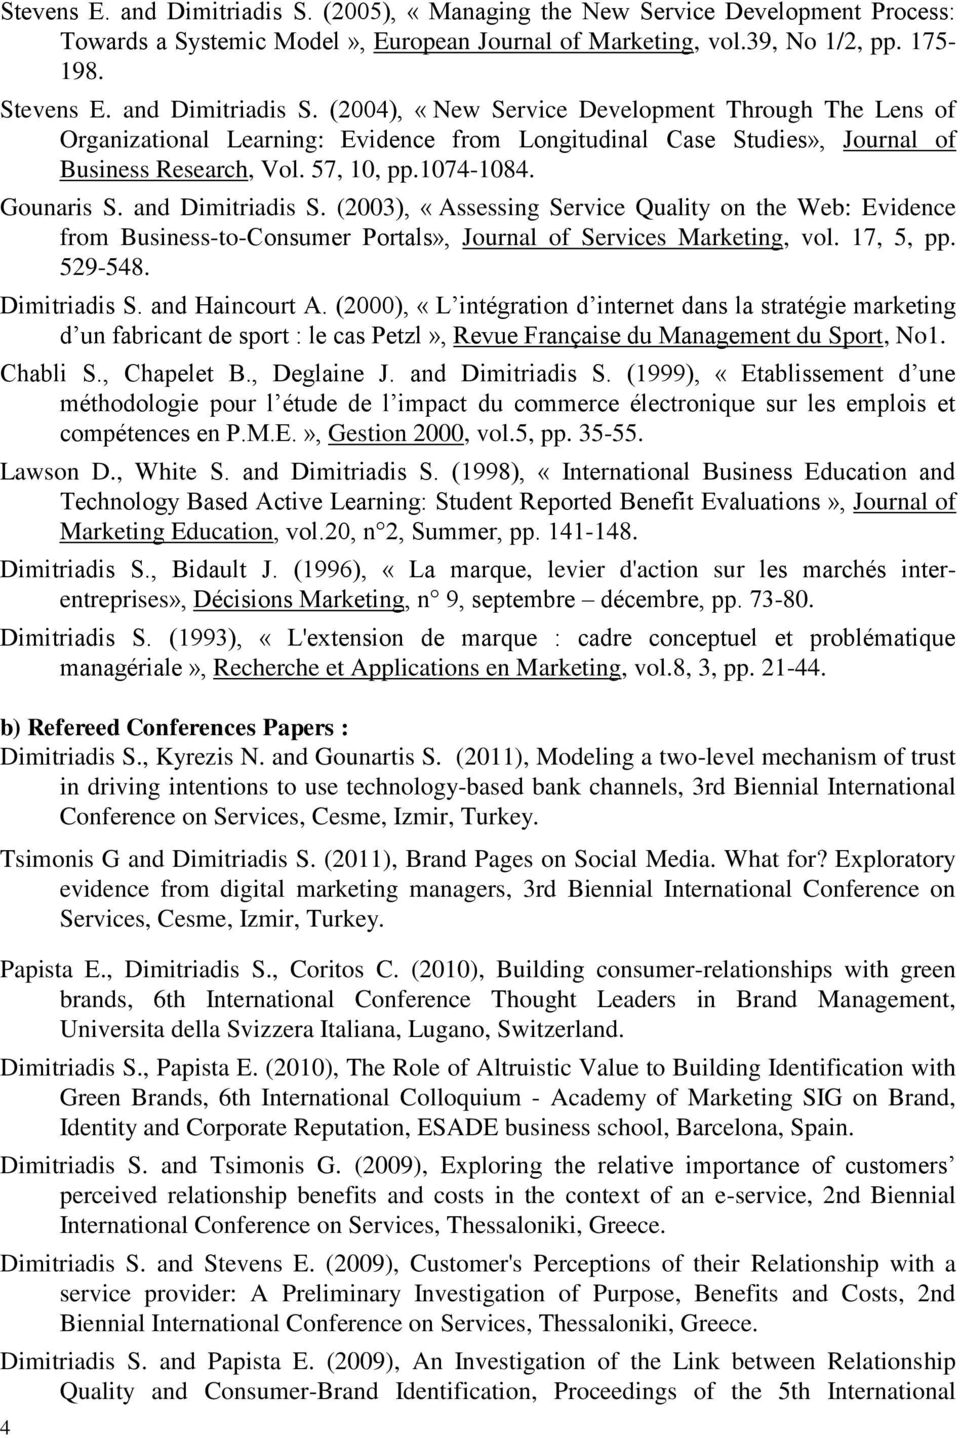 Gounaris S. and Dimitriadis S. (2003), «Assessing Service Quality on the Web: Evidence from Business-to-Consumer Portals», Journal of Services Marketing, vol. 17, 5, pp. 529-548. Dimitriadis S. and Haincourt A.